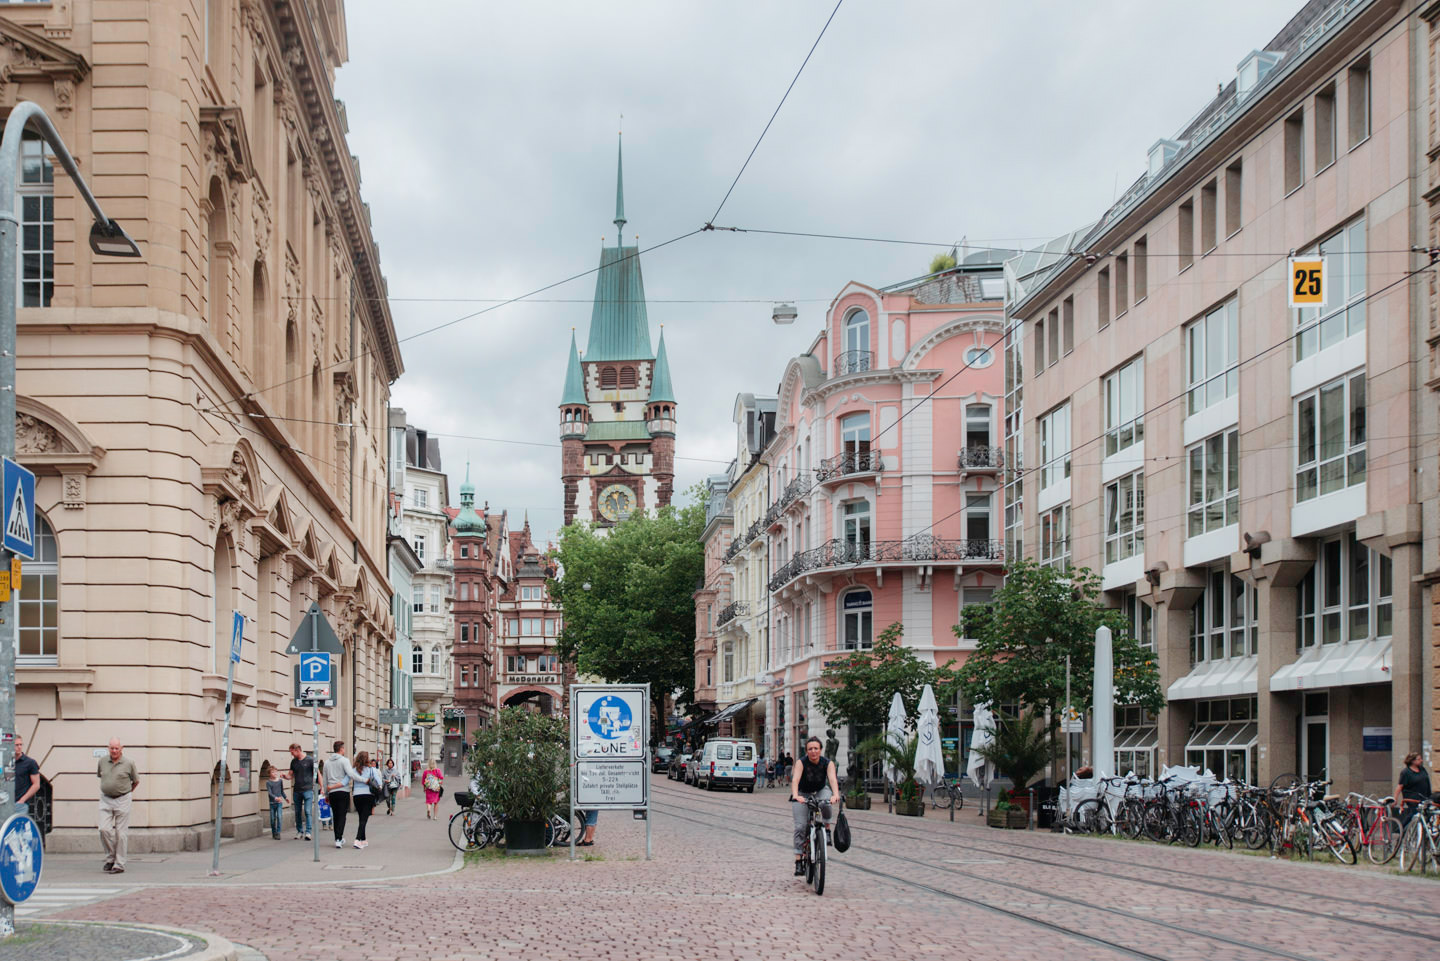 Blog-Mode-And-The-City-Lifestyle-Roadtrip-Allemagne-Autriche04